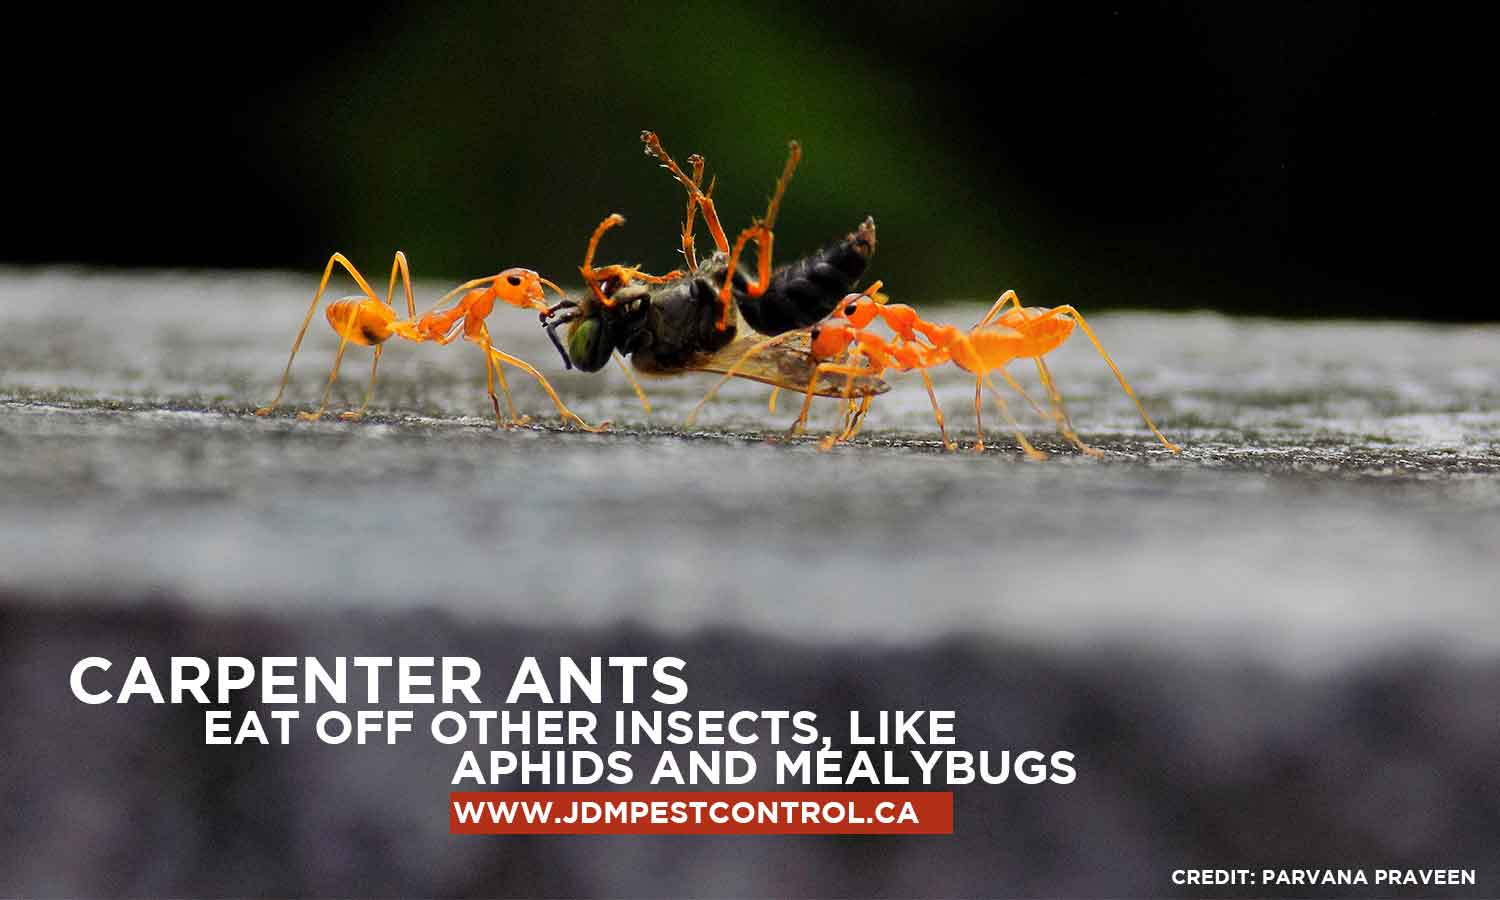 Carpenter ants eat off other insects, like aphids and mealybugs